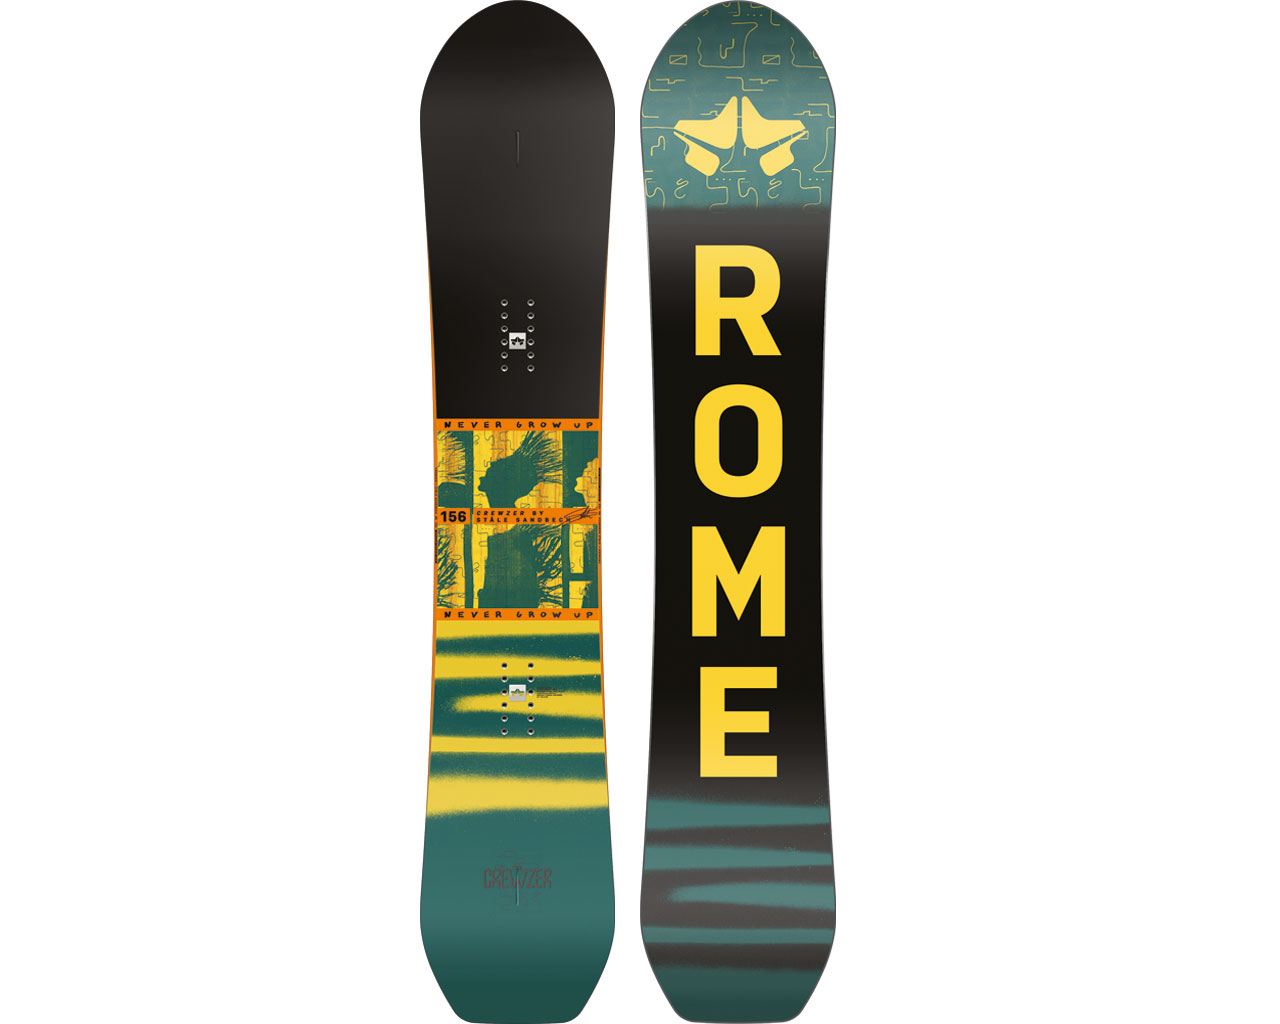 Rome Snowboards FW20/21 Snowboard Preview